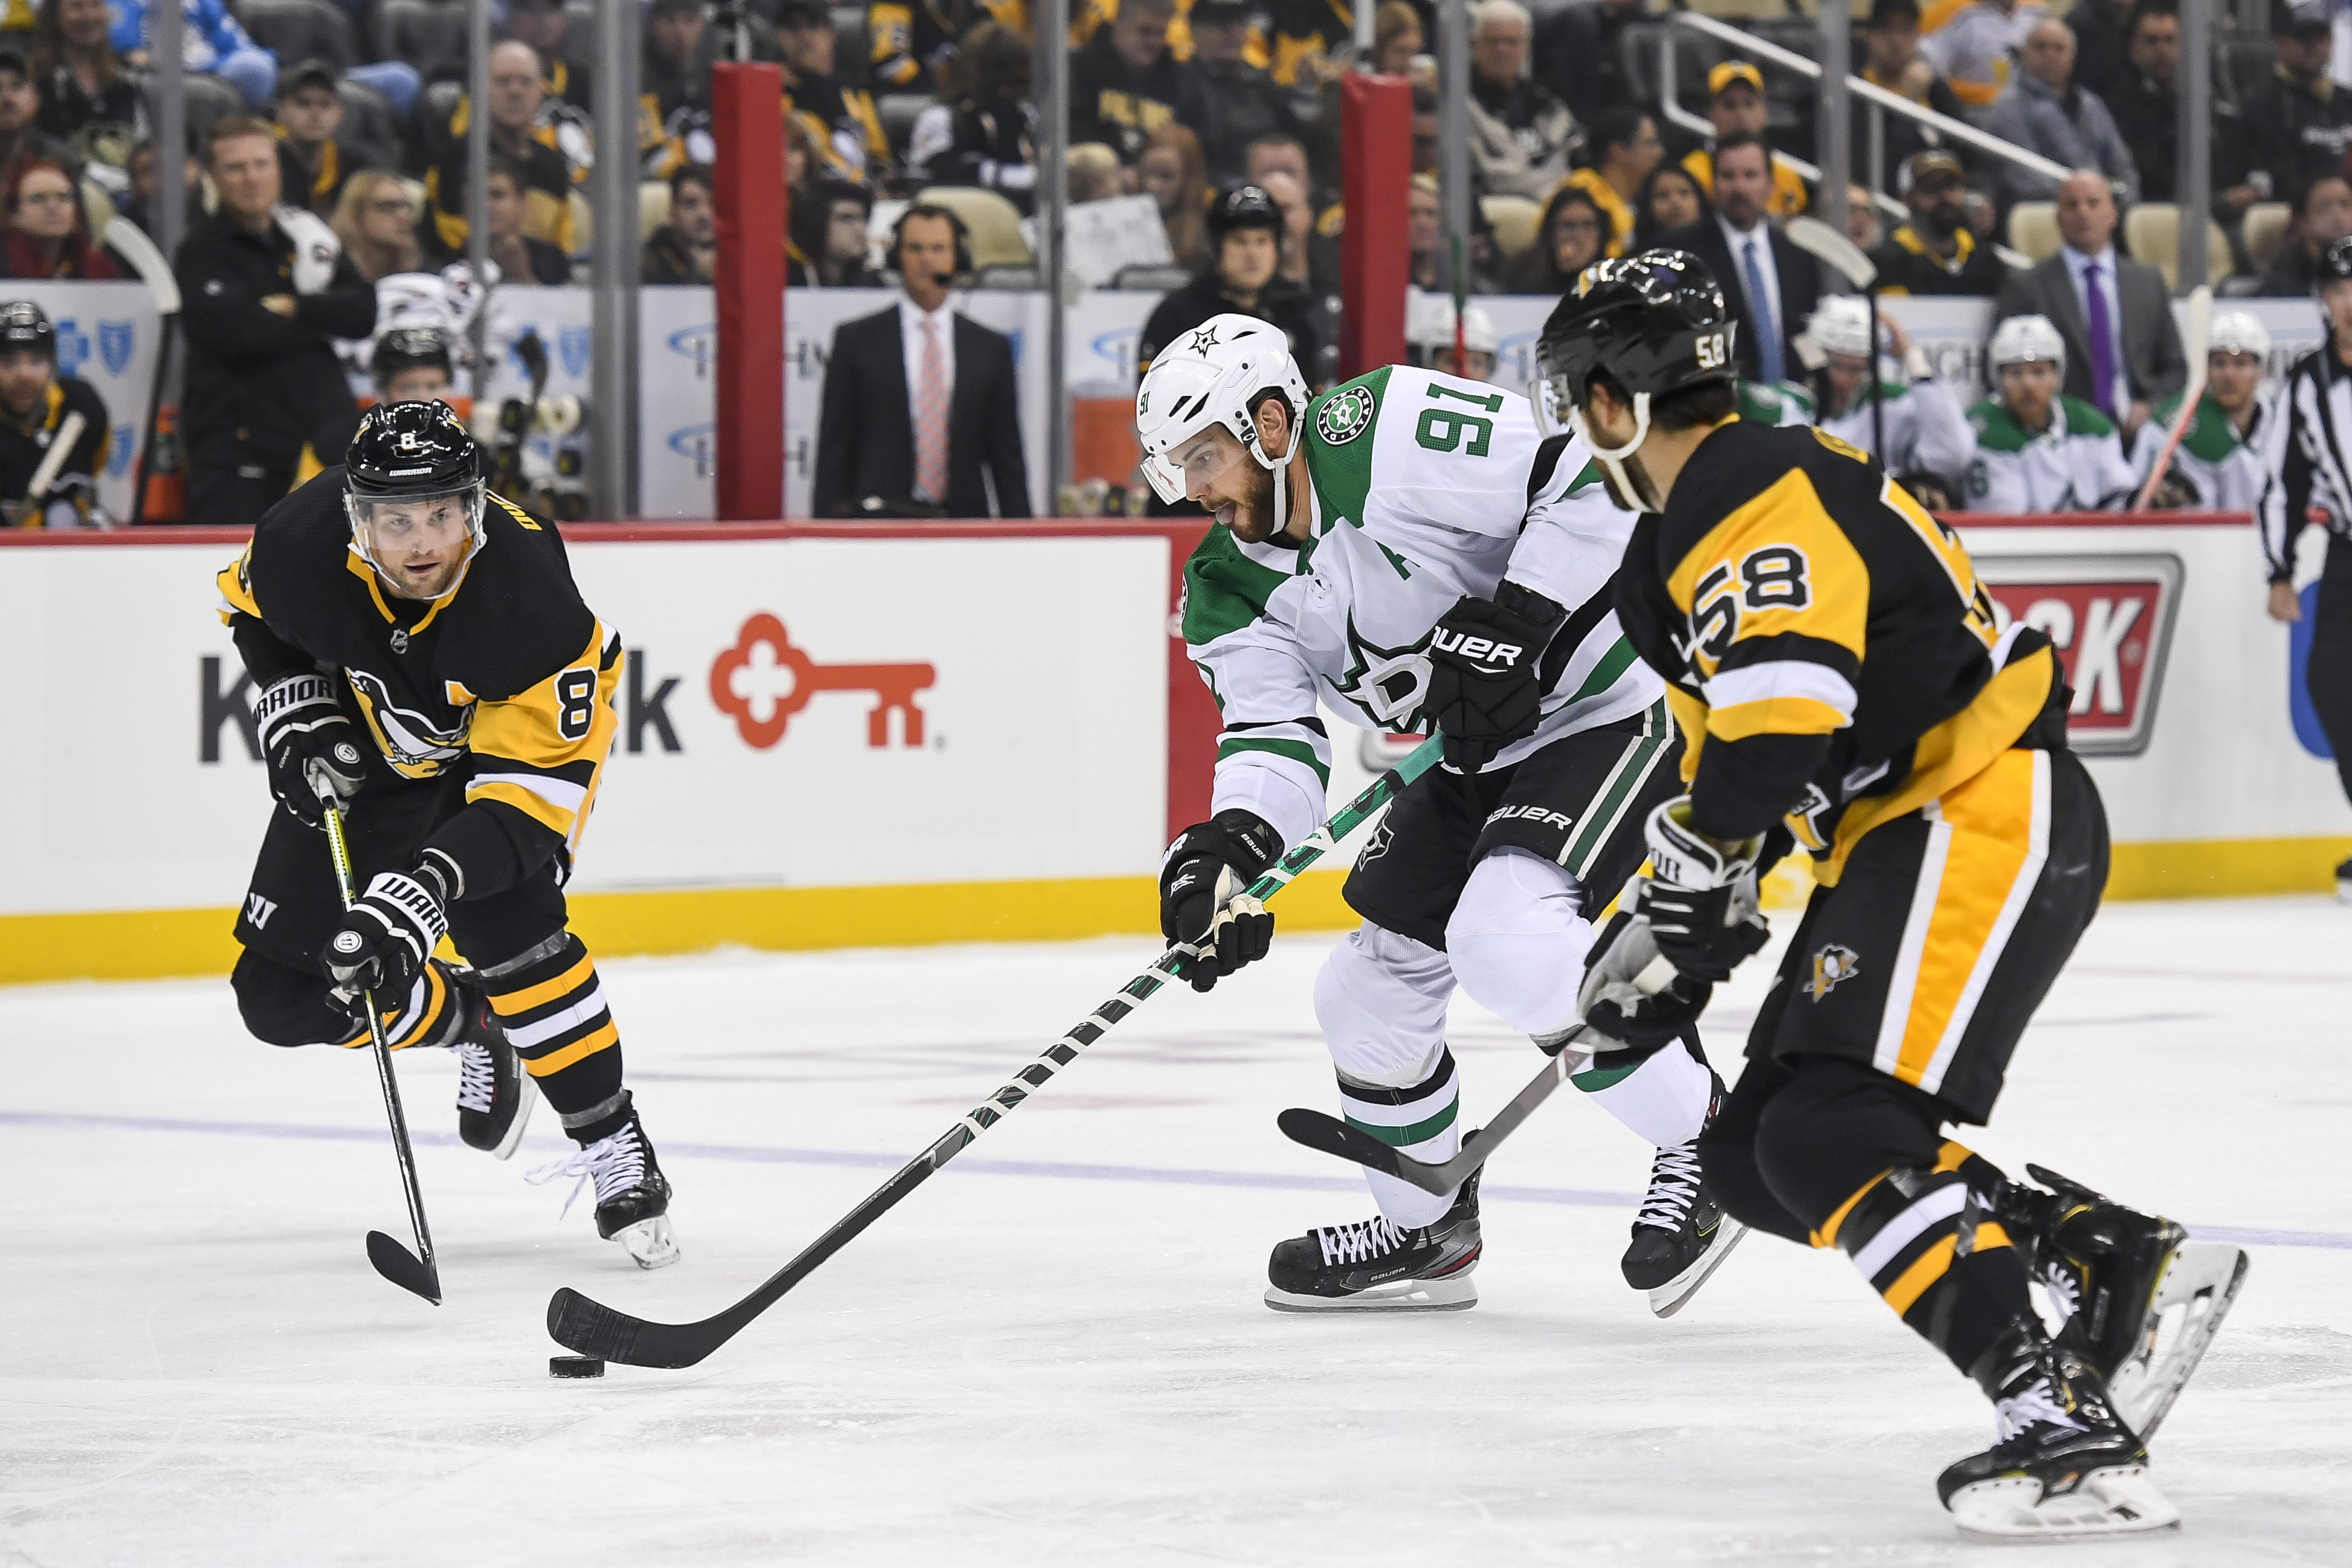 NHL: OCT 18 Stars at Penguins